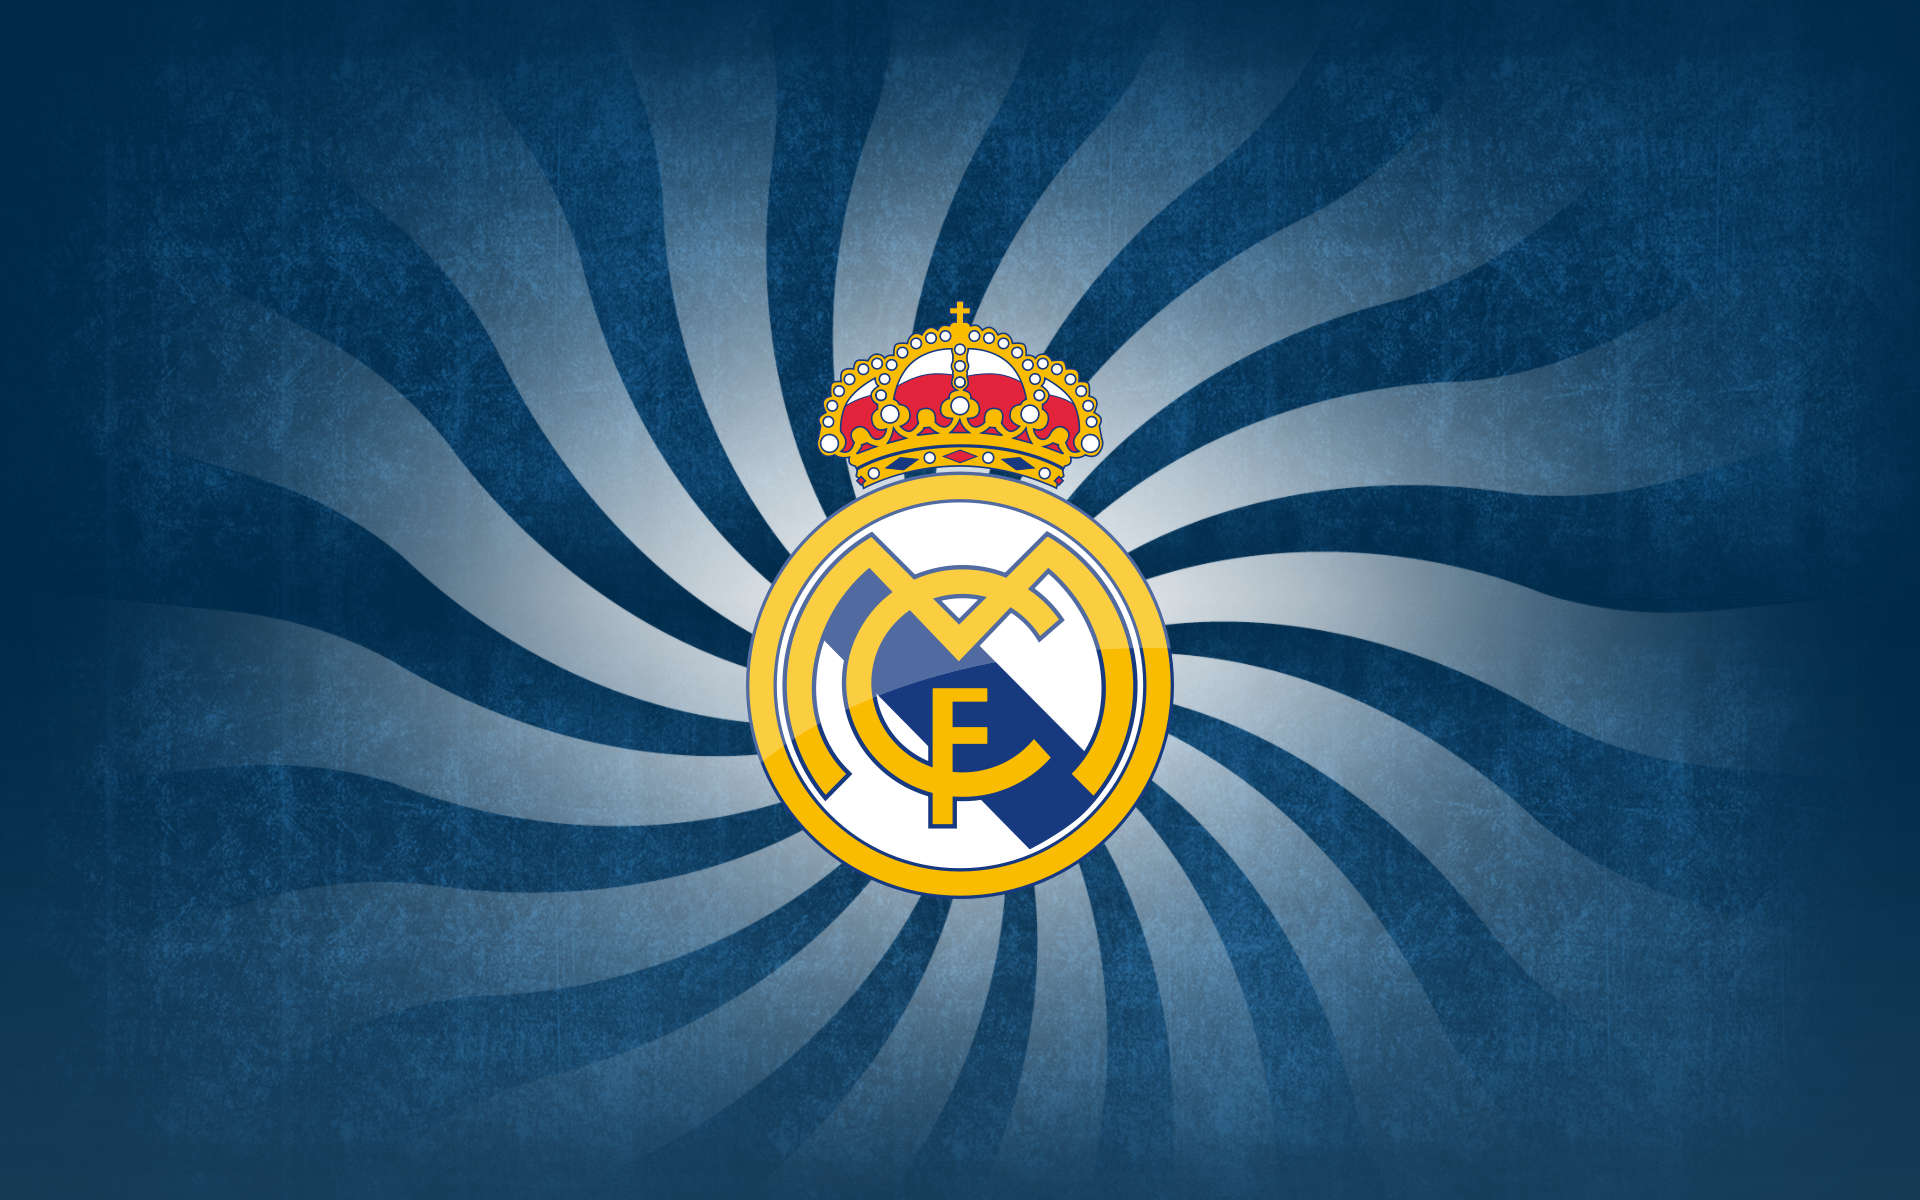 1920x1200 - Real Madrid C.F. Wallpapers 16